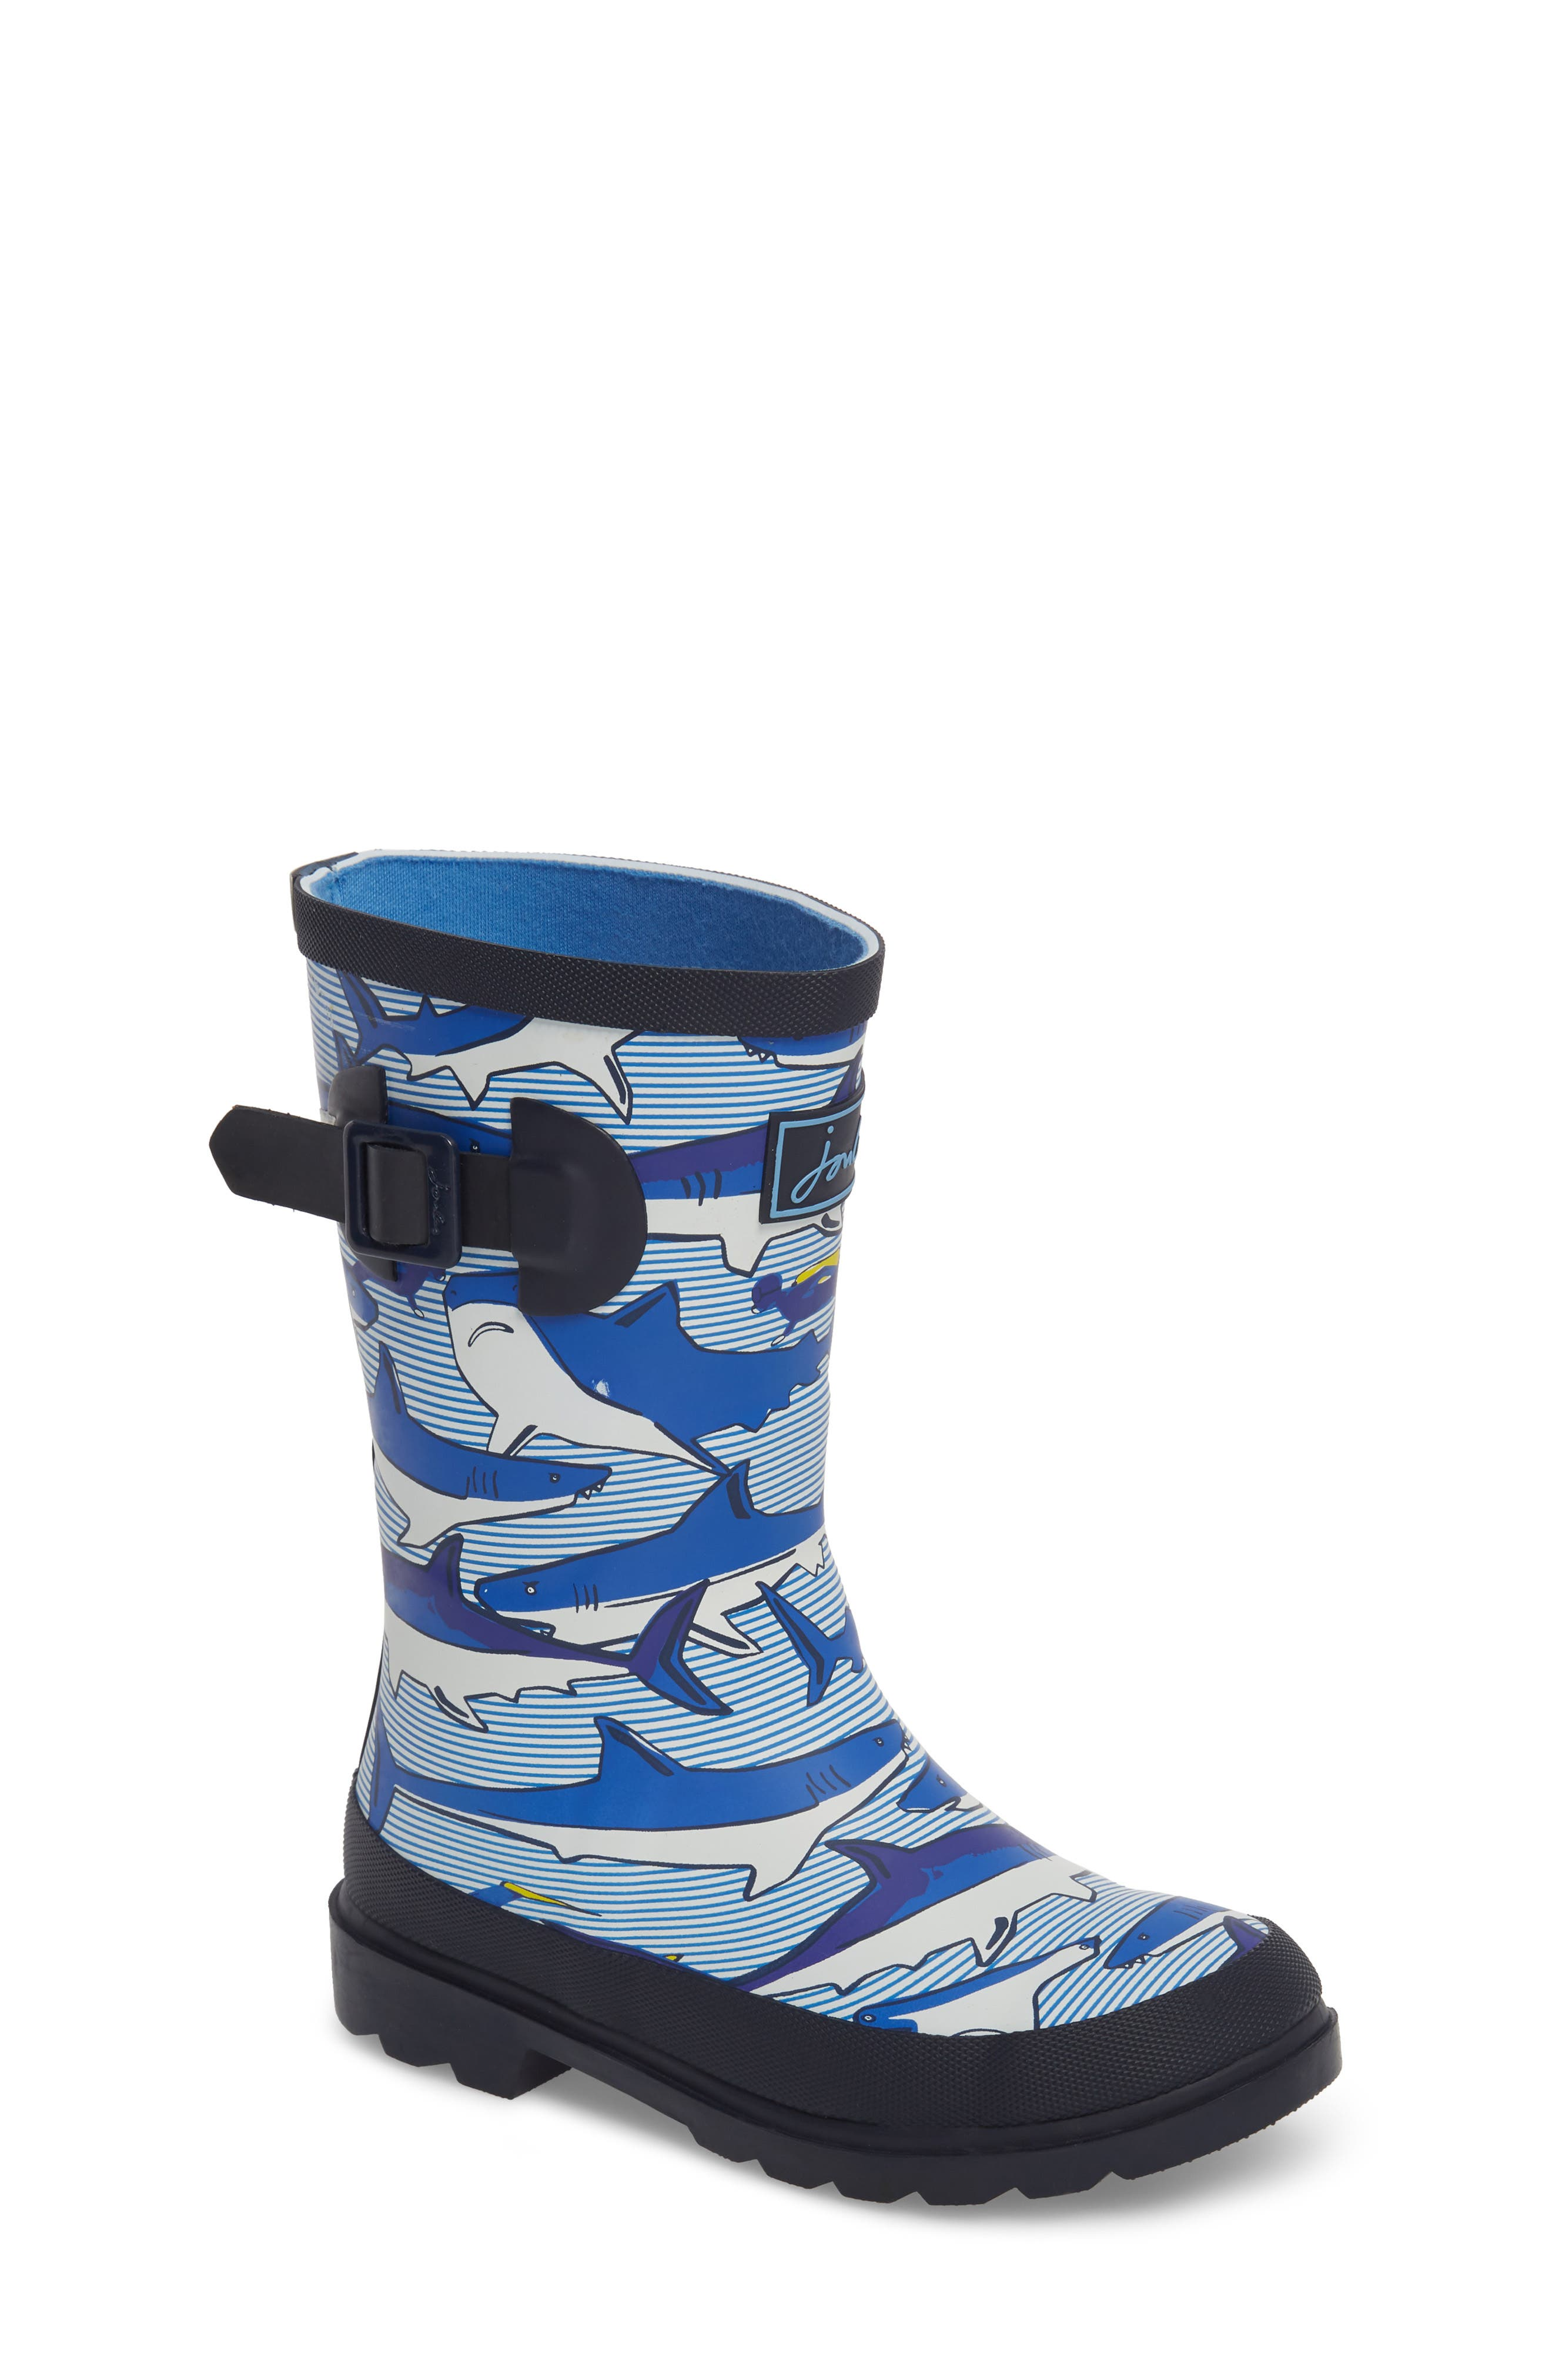 Main Image - Joules Mid Height Print Welly Rain Boot (Toddler, Little Kid & Big Kid)